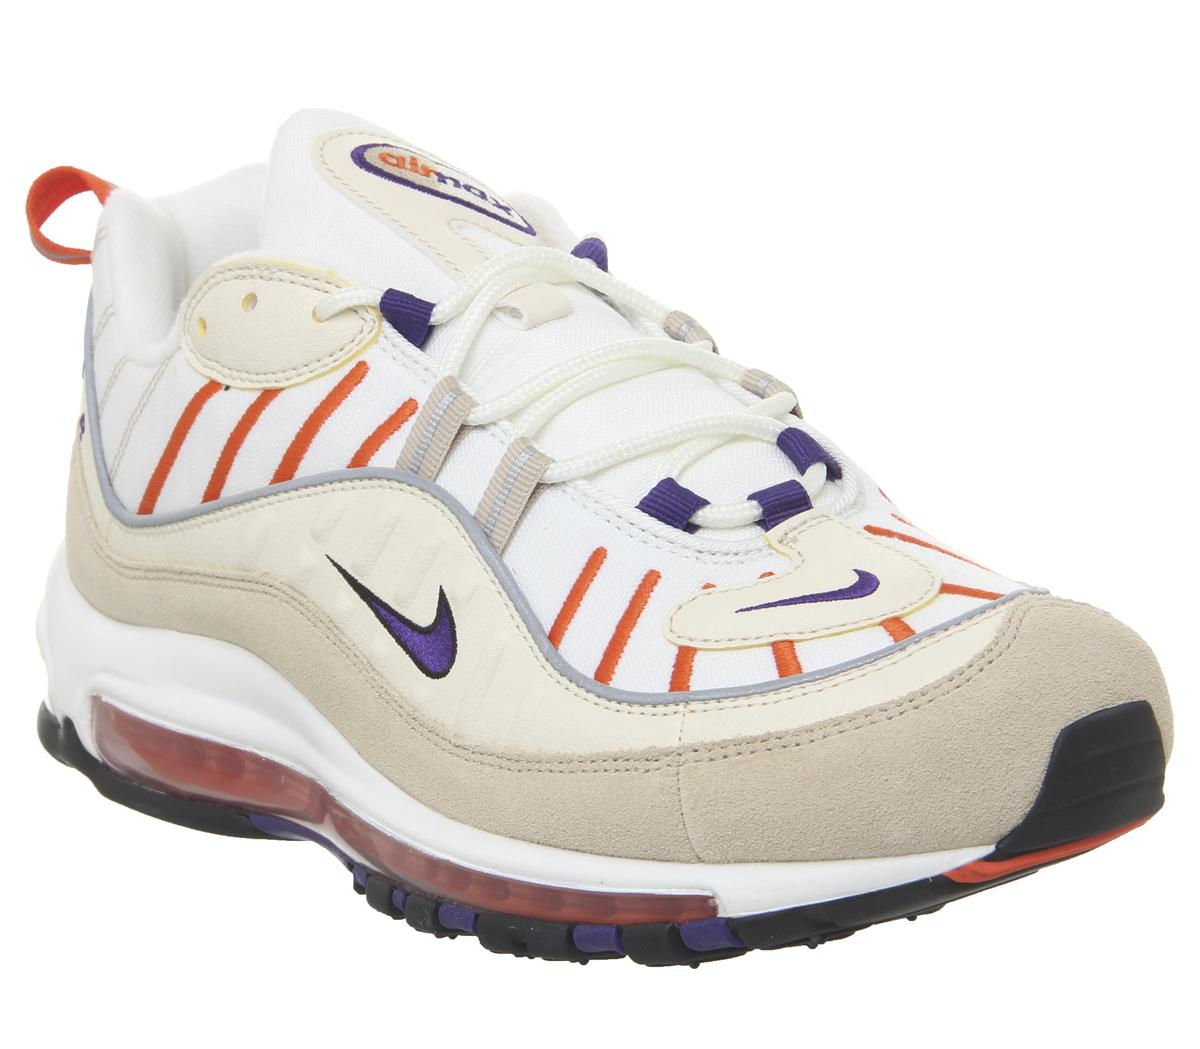 Details about NIKE AIR MAX 1 SD WOMENS TRAINERS SNEAKERS SHOES UK 9,5 EUR 44,5 US 12